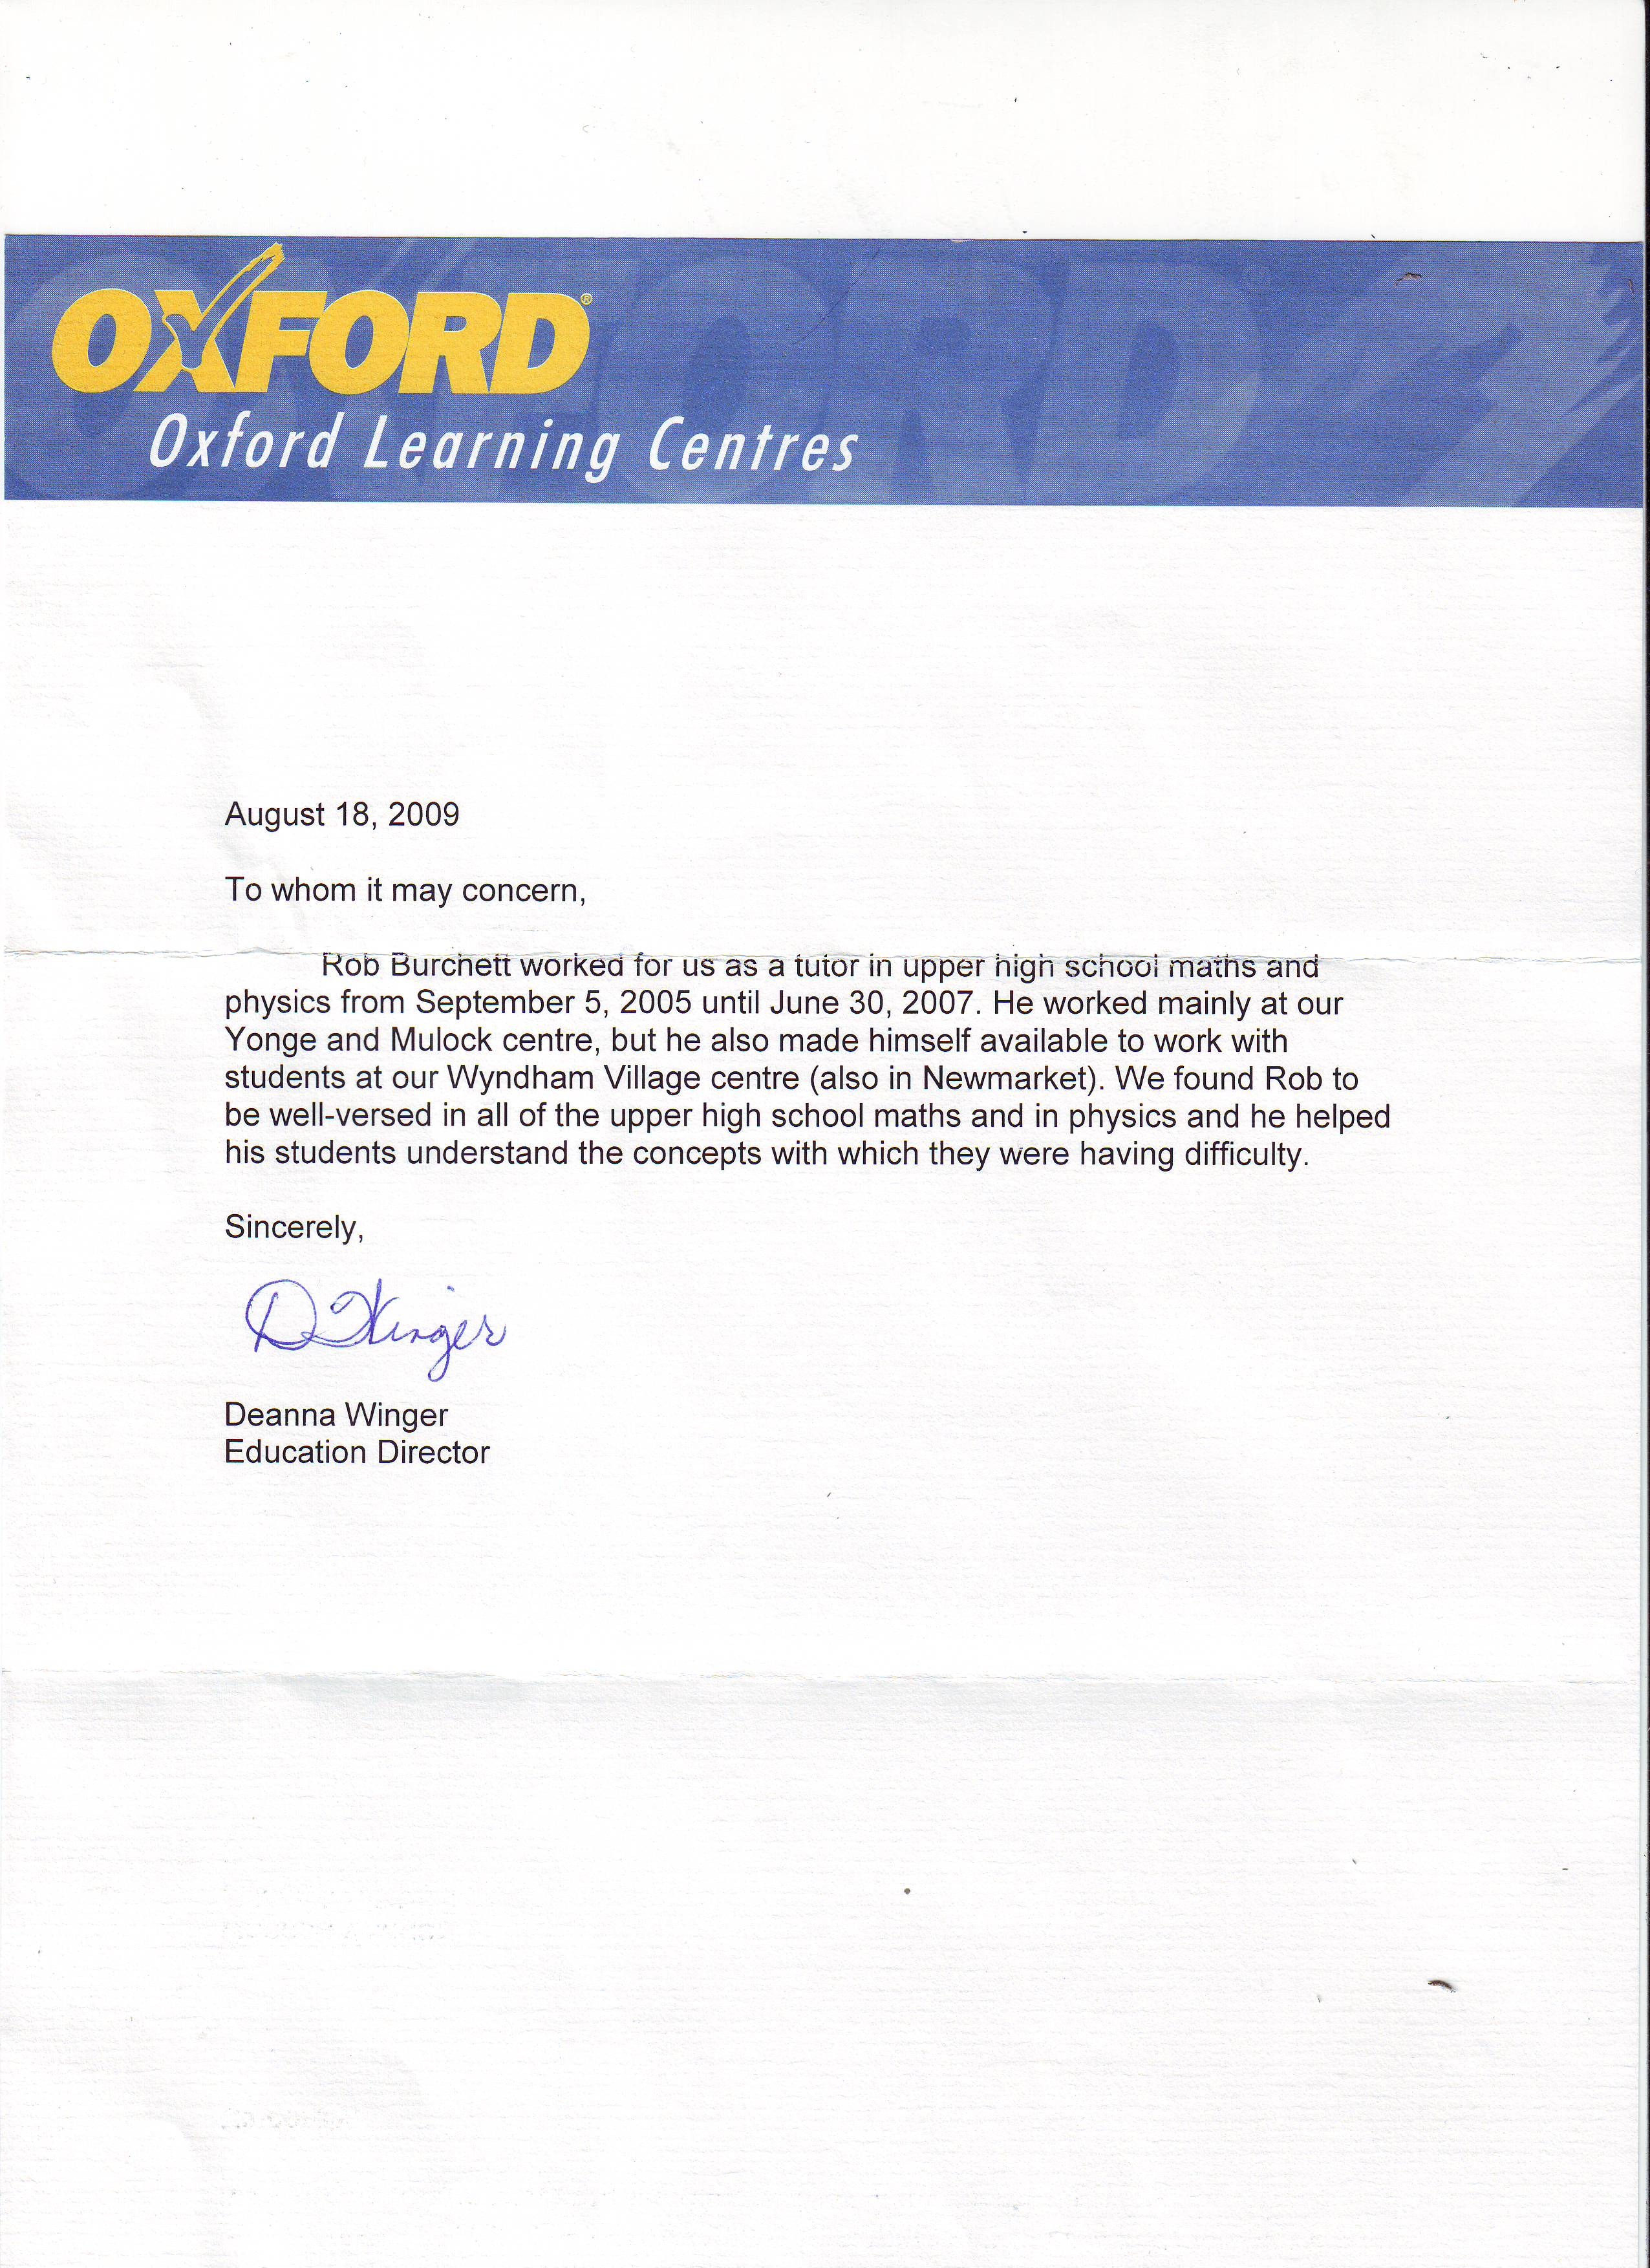 Letter of recomendation from Oxford